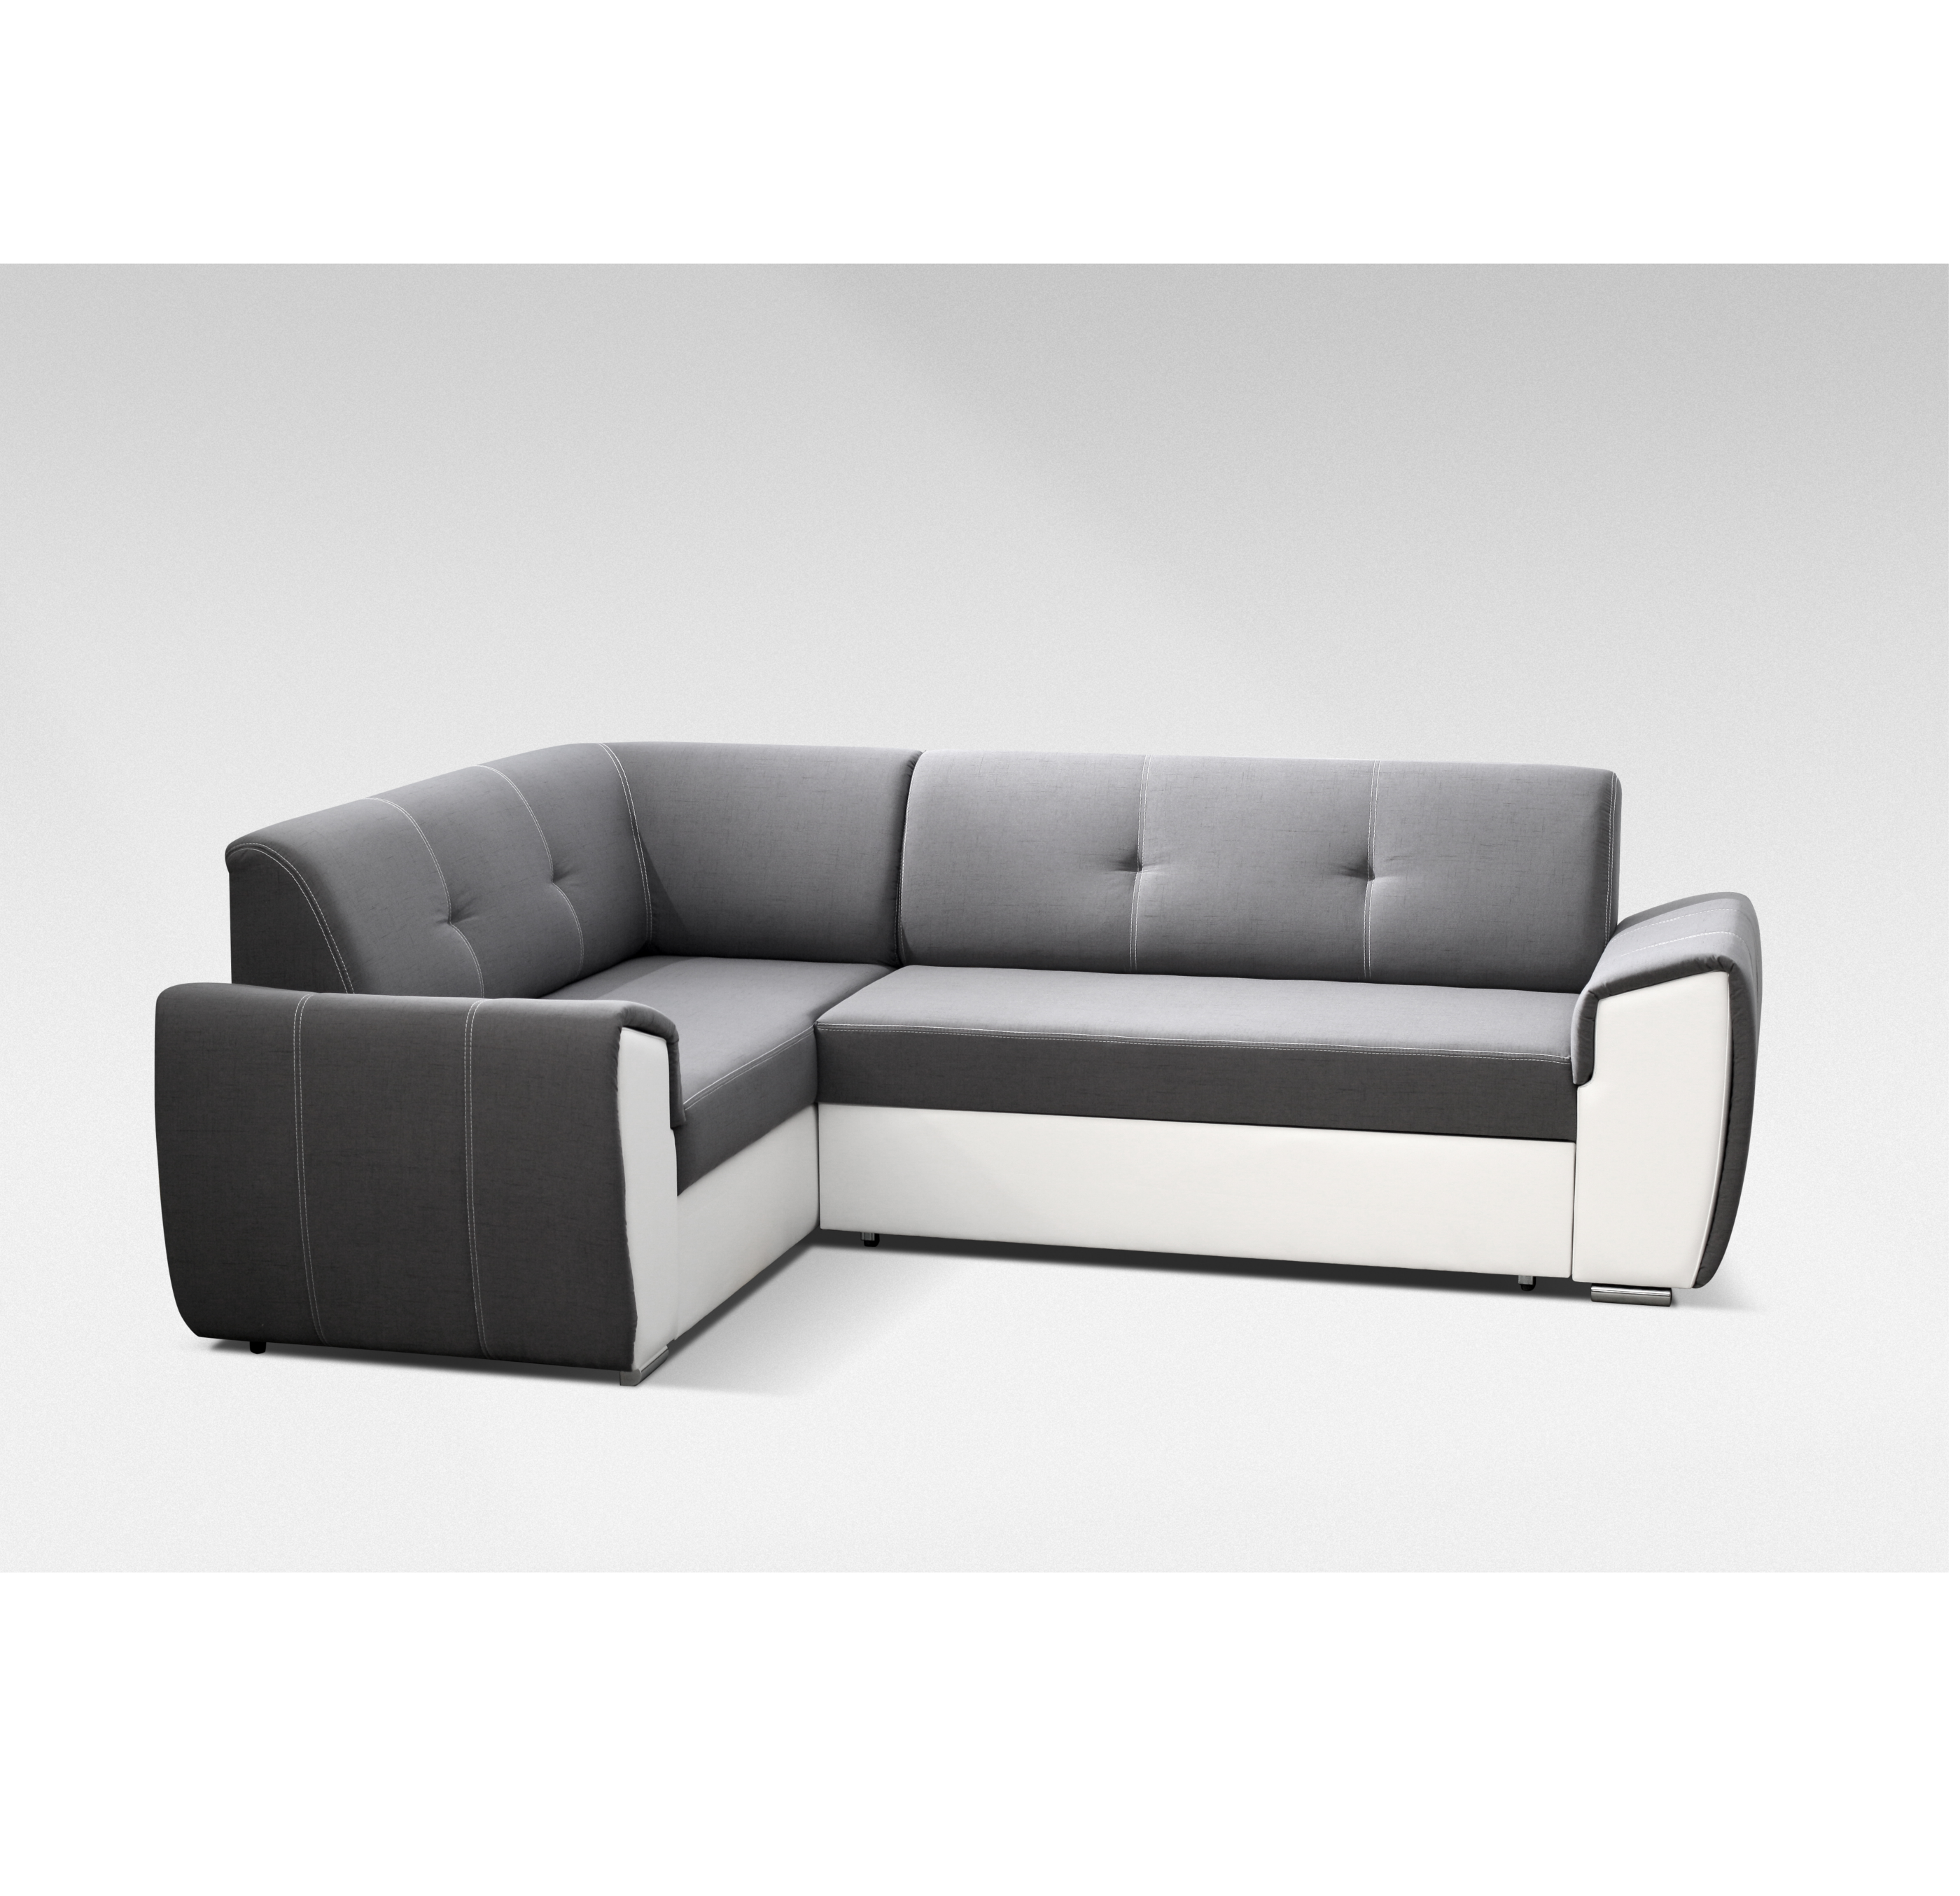 ecksofa verona i dunkelgrau m bel muller braun. Black Bedroom Furniture Sets. Home Design Ideas